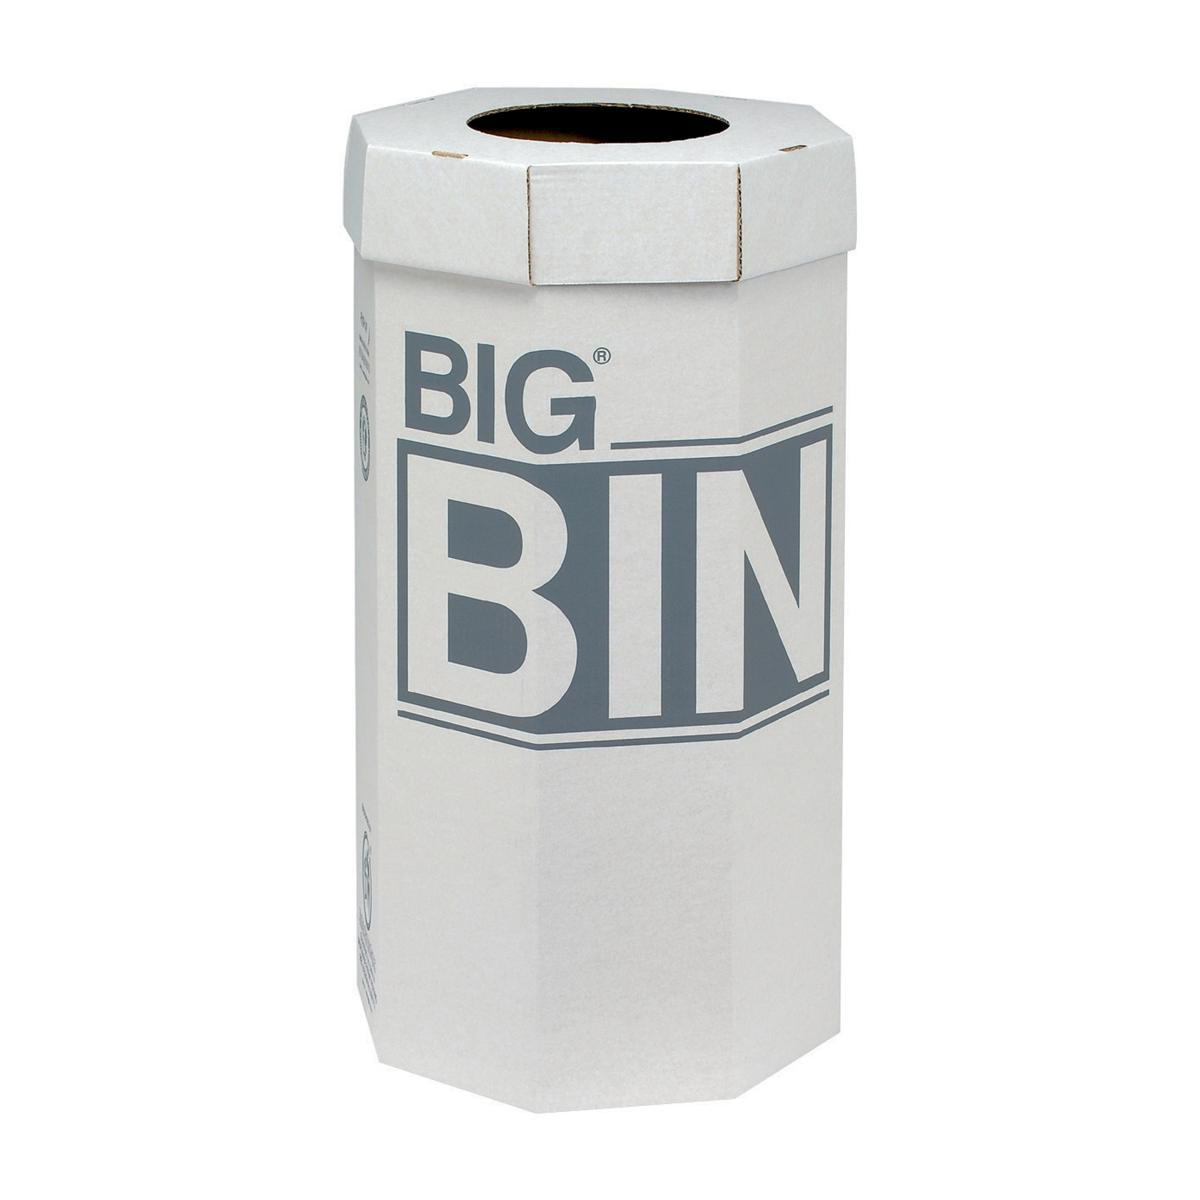 Acorn Large Bin Flat Packed Recycled Board Material 160 Litres 450x900mm White Ref 142958 [Pack 5]